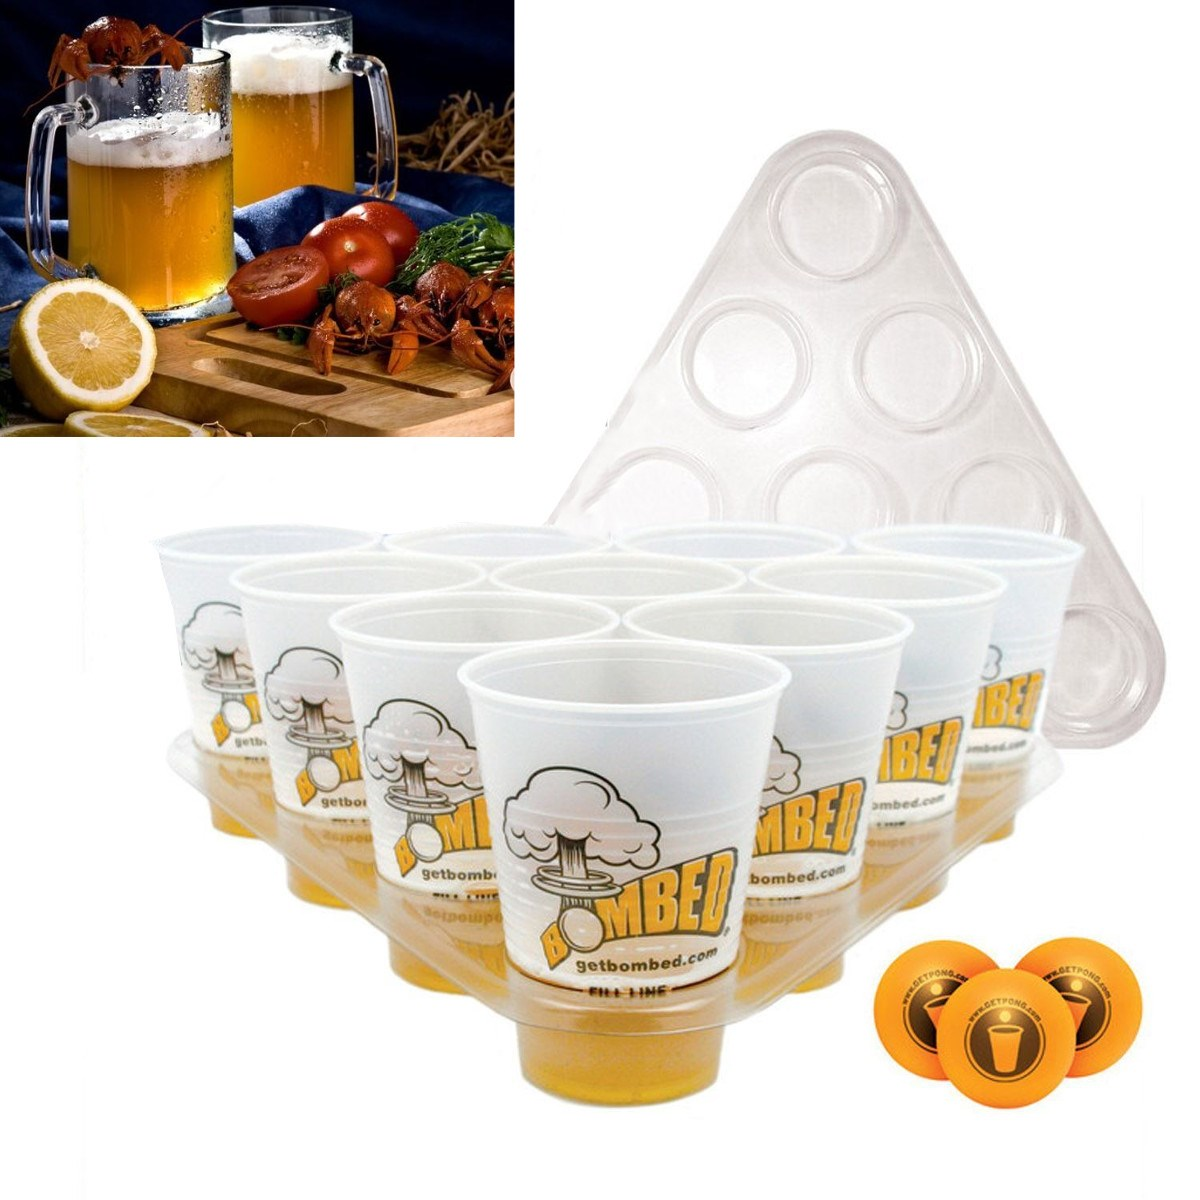 Ultimate Bombed Beer Pong Party Fun Kit 22 Cups 3 Balls For Adult Table Top Board Games Drinking Game Pub Bar BBQ Gift(China (Mainland))